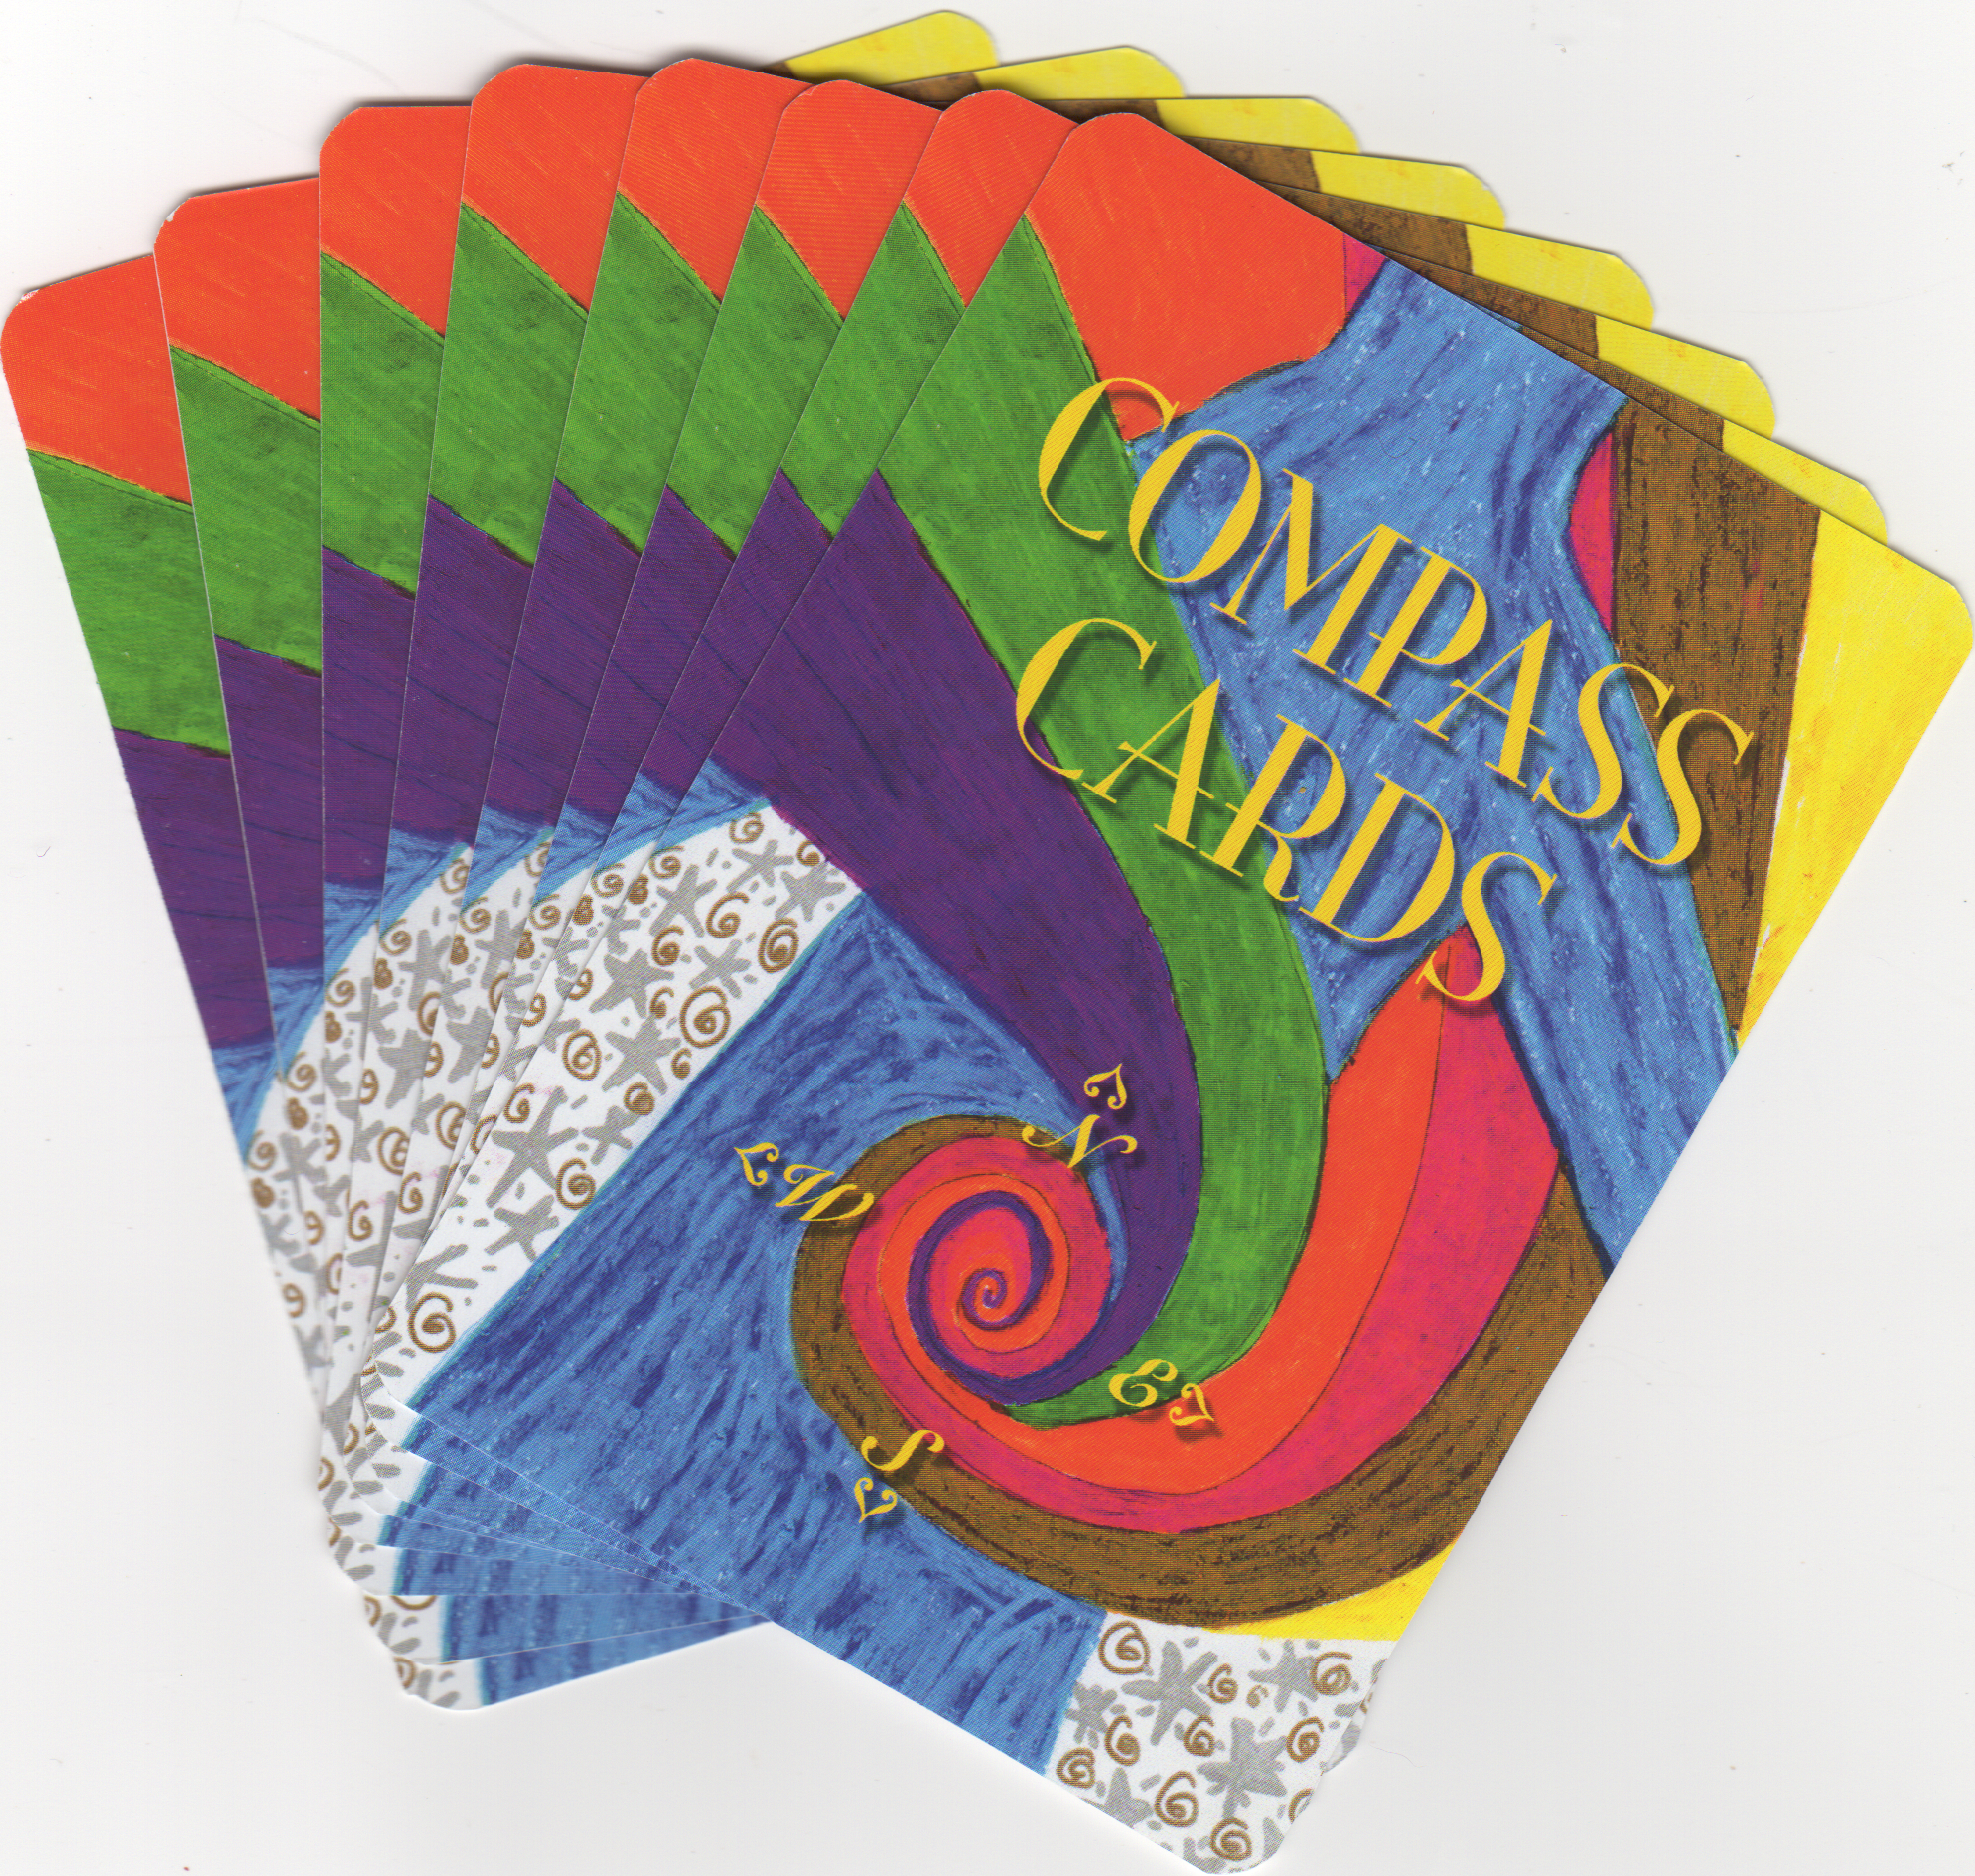 Compass Cards, by Melissa Granchi, 58 cards in deck packaged in a burlap sack